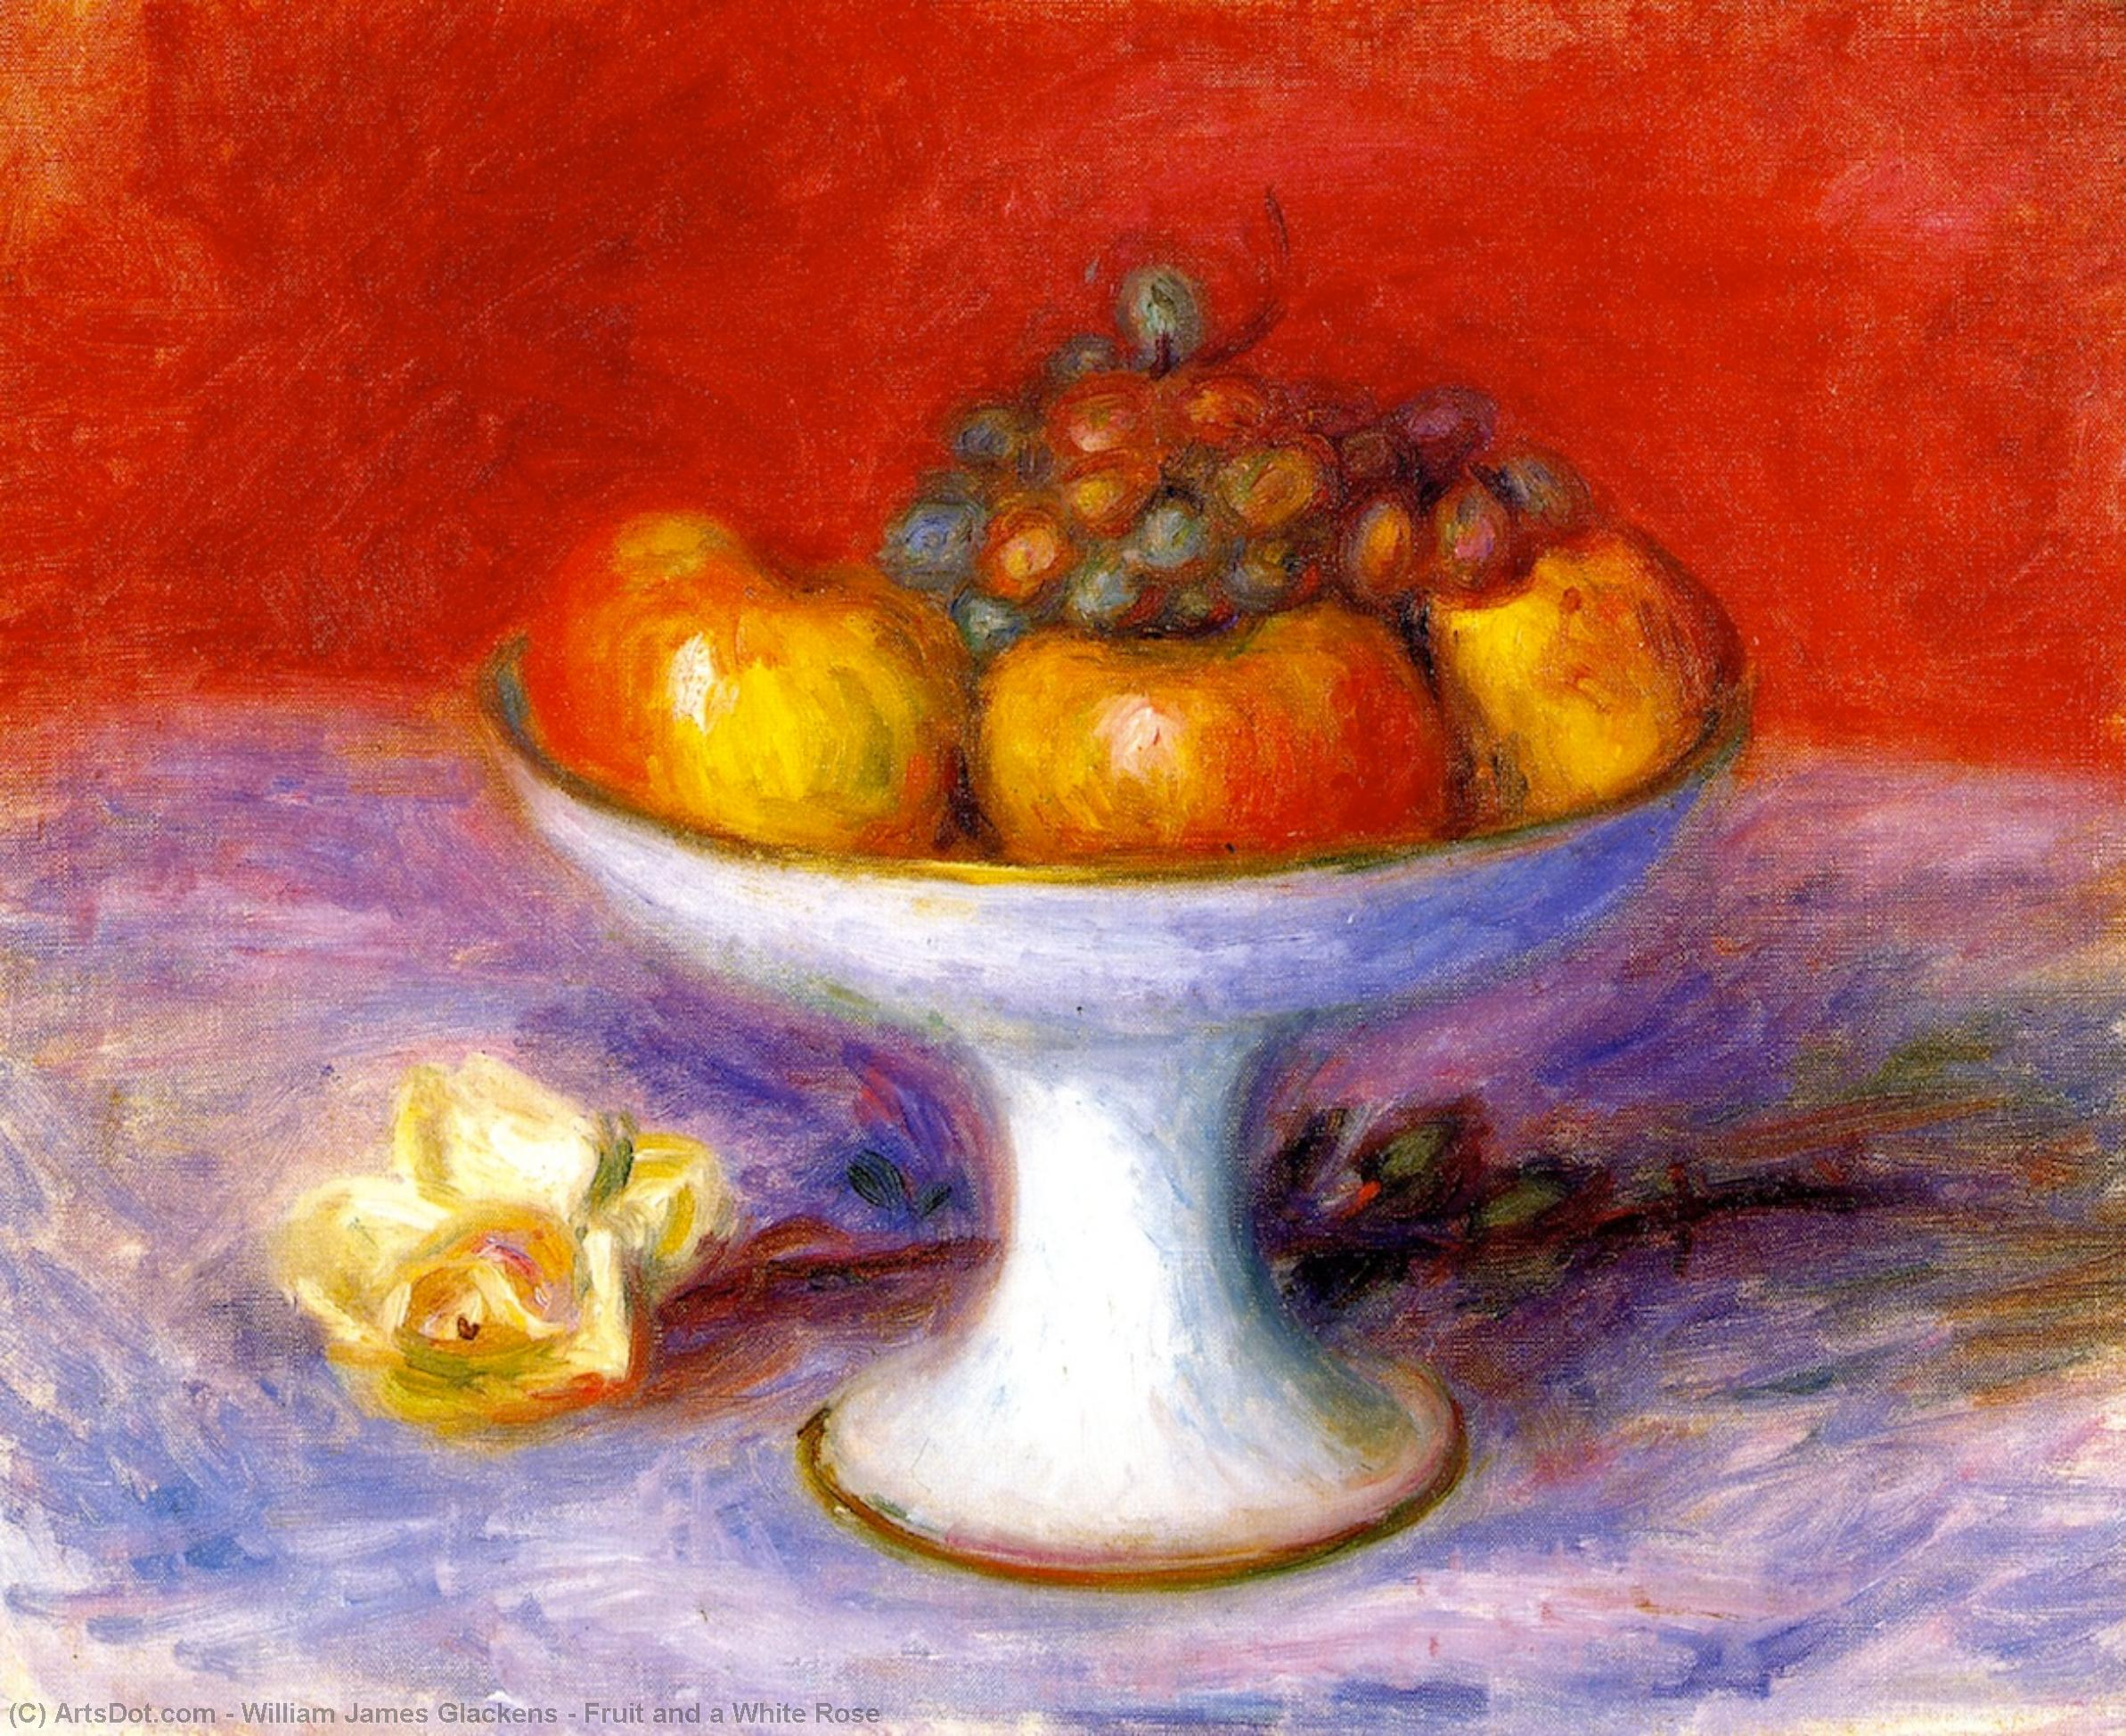 Order Art Reproductions | Fruit and a White Rose, 1930 by William James Glackens (1870-1938, United States) | ArtsDot.com